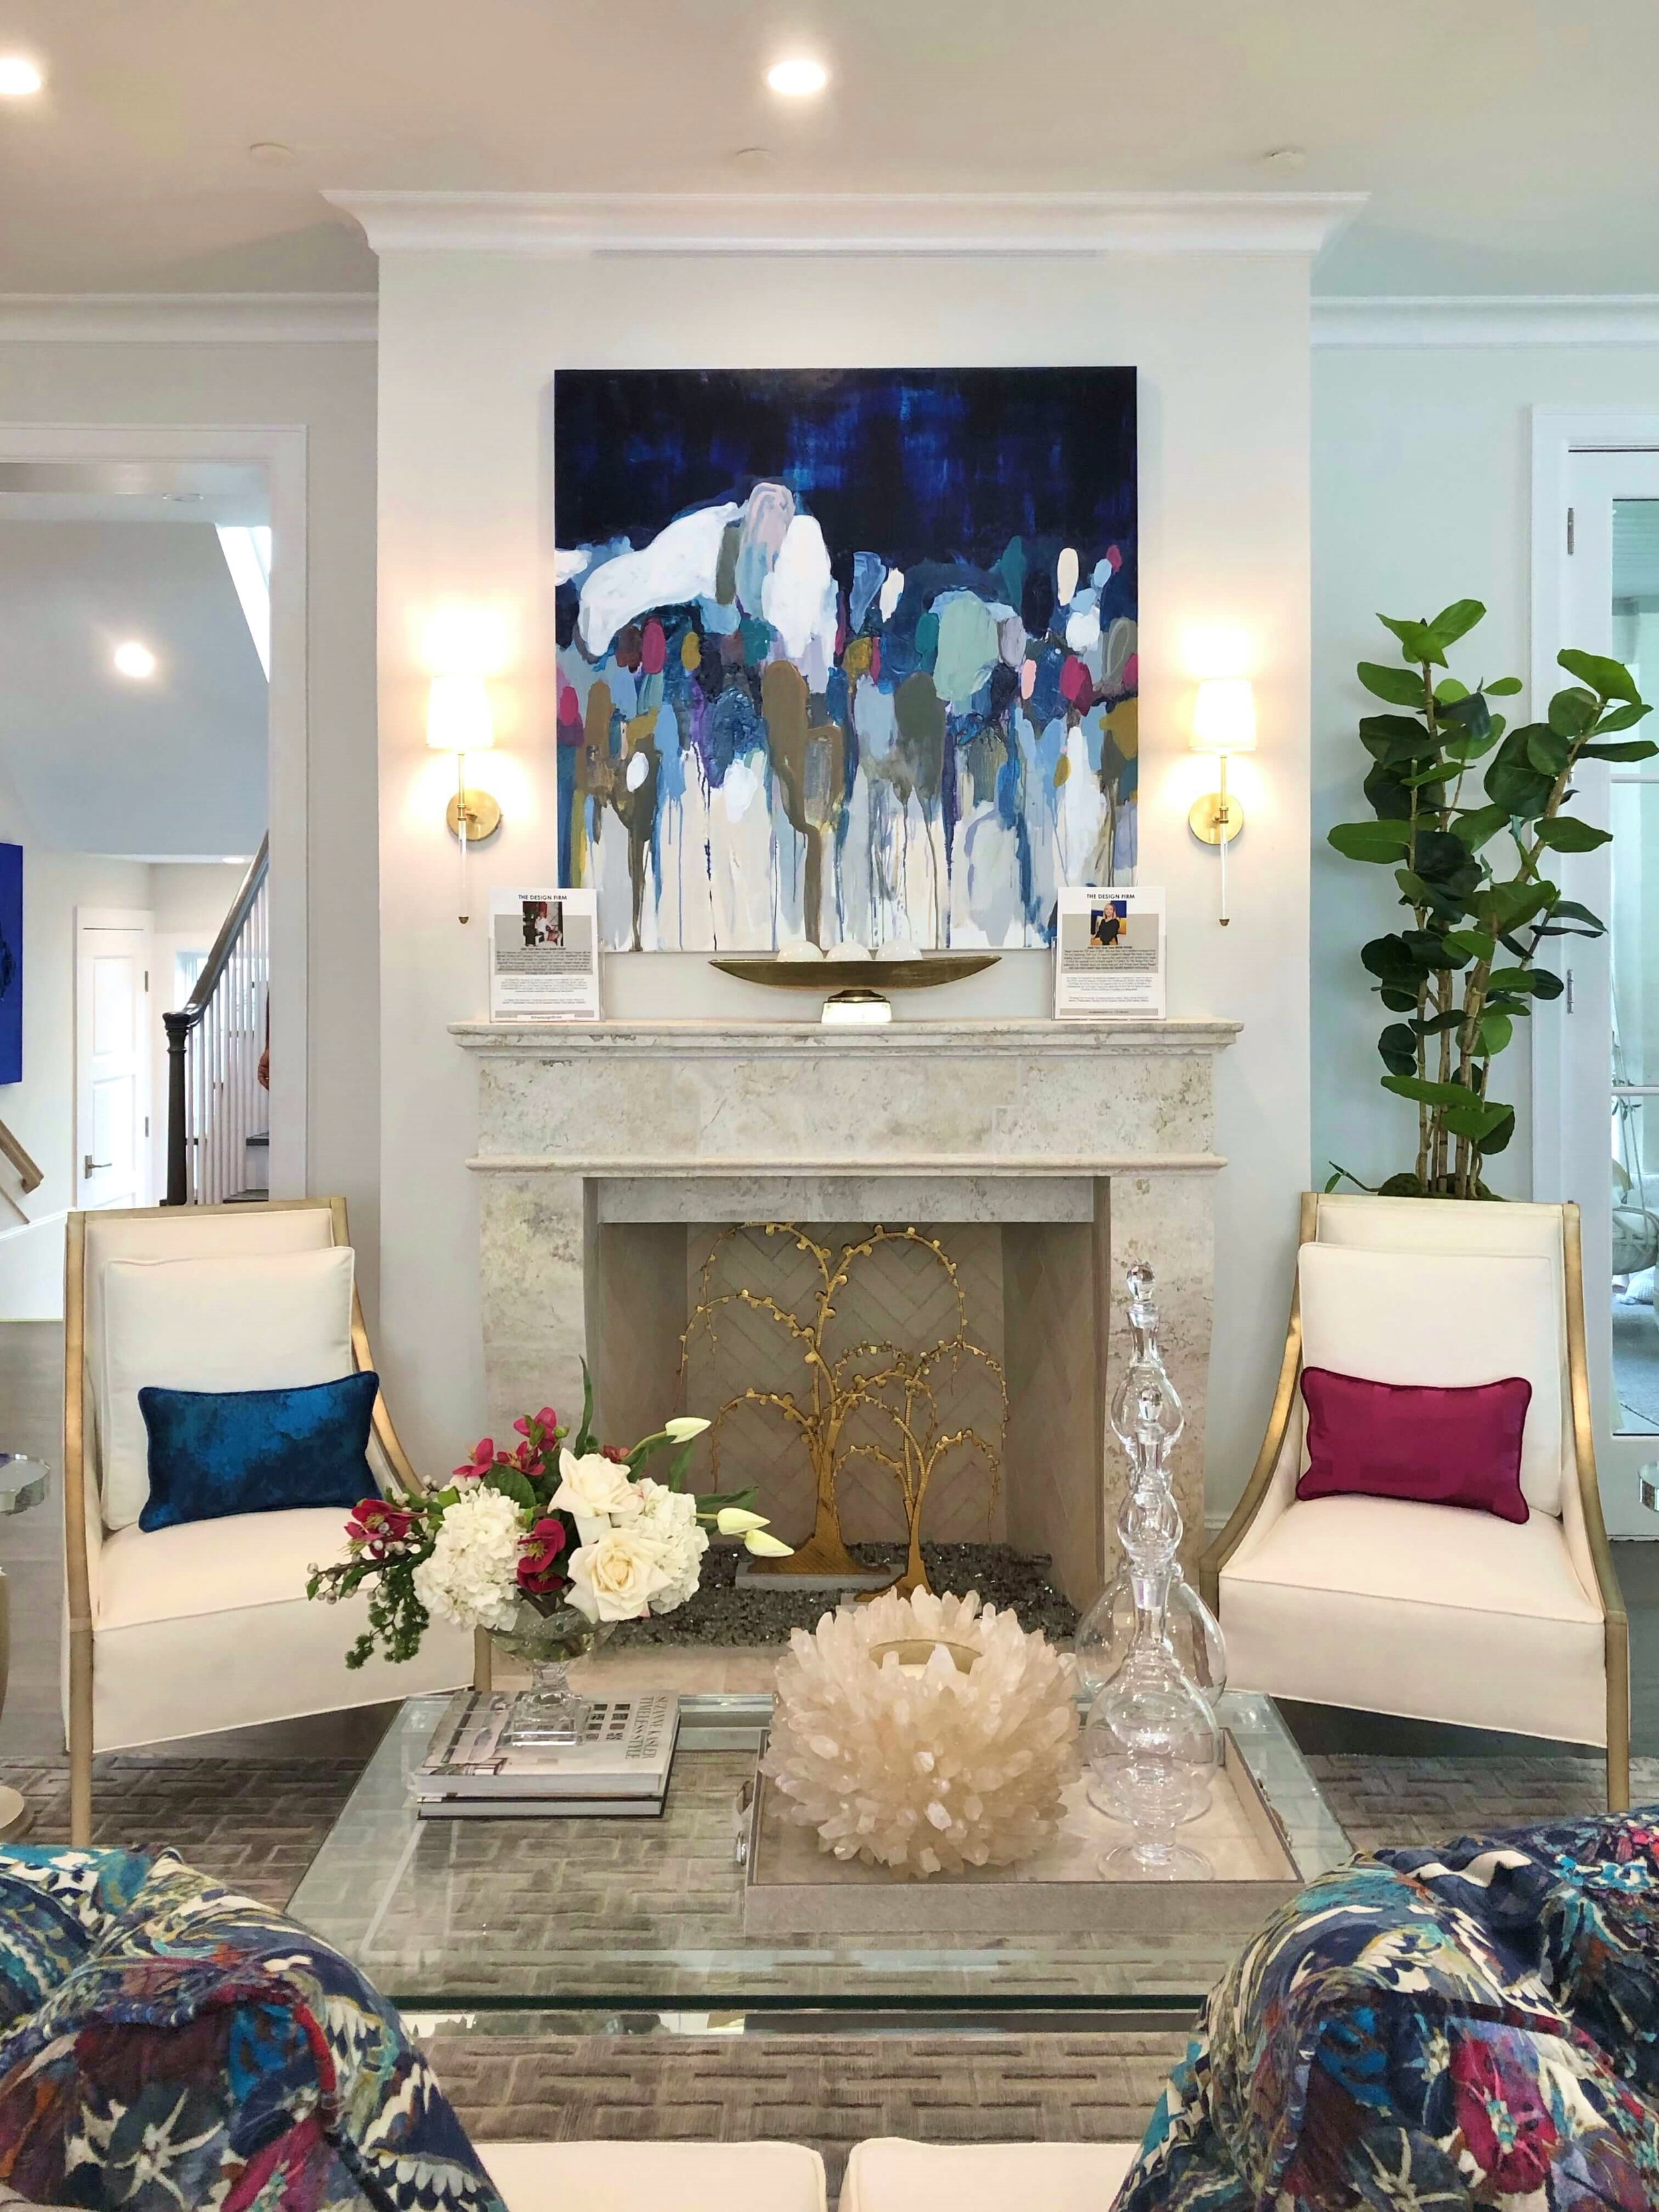 The family room, with this gorgeous fireplace and jewel-toned decor, was designed by The Design Firm. ASID Showhouse, Houston. #fireplace #jeweltones